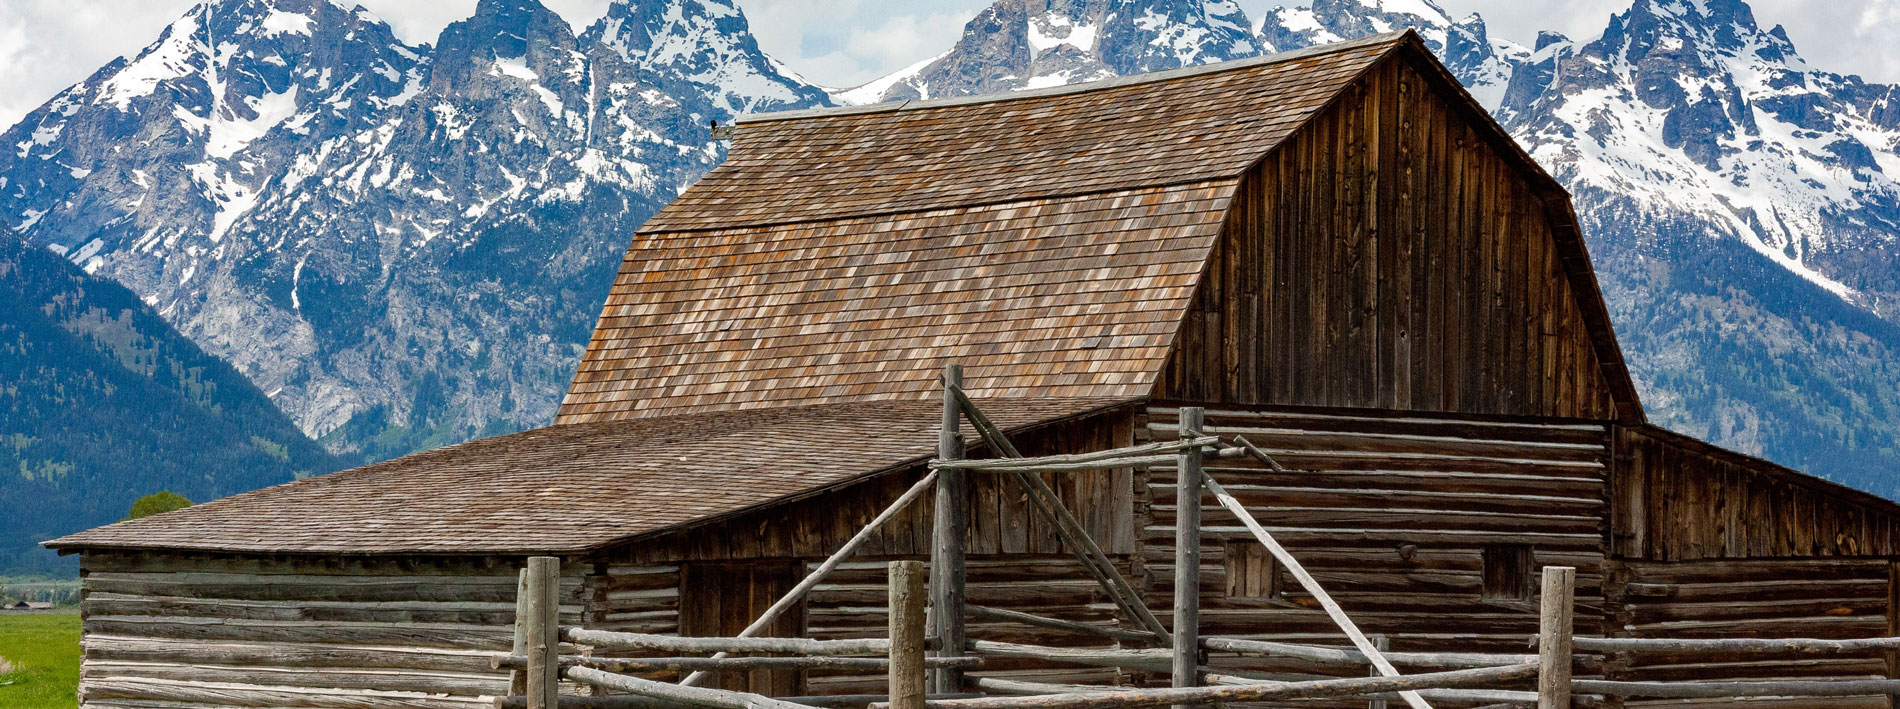 barn with mountains in the background